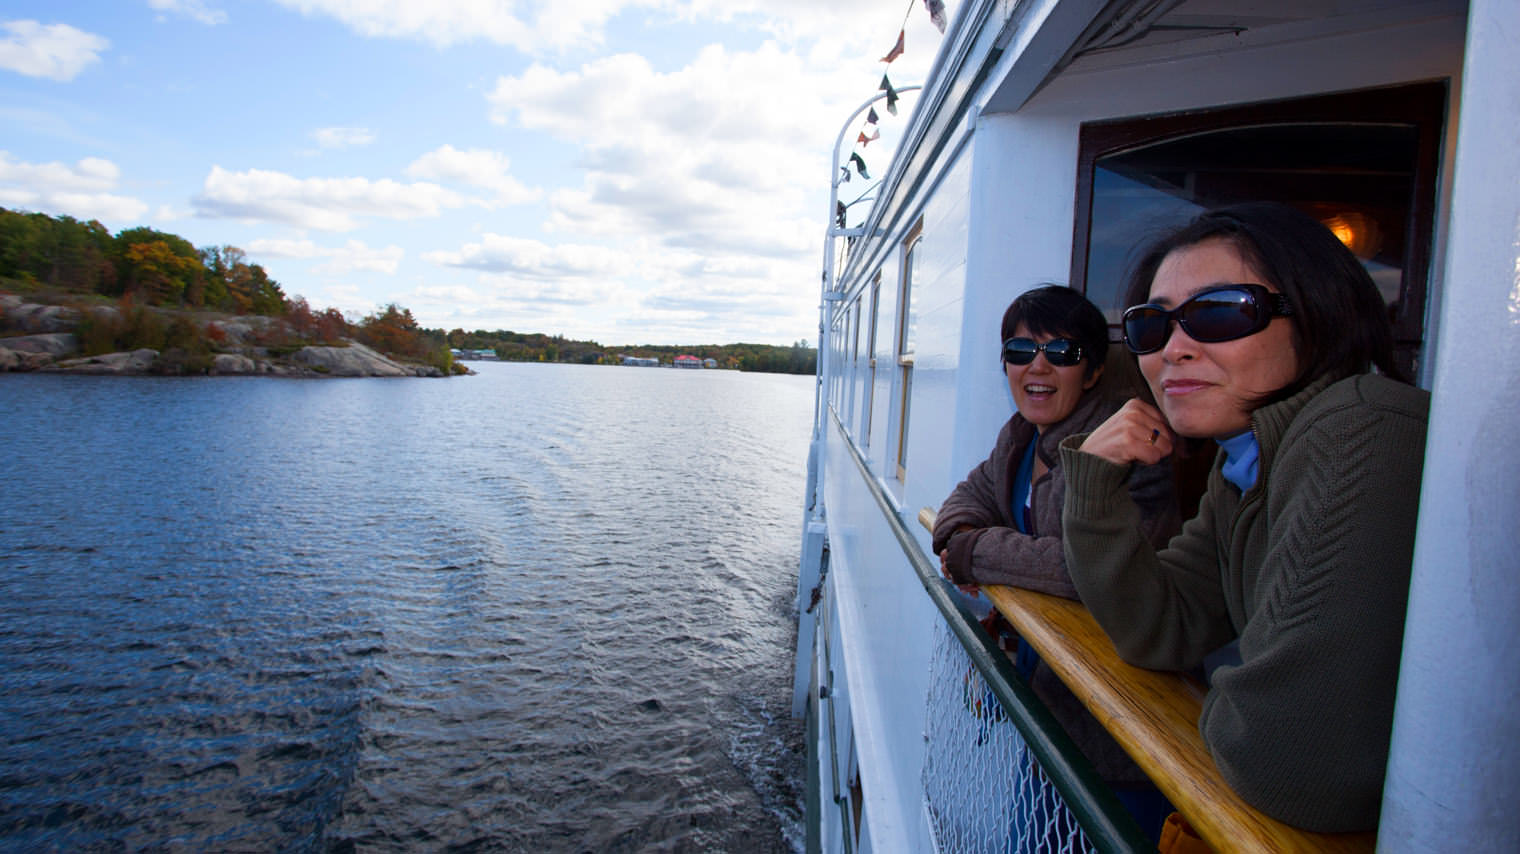 Muskoka Boat Cruise - Best Places to Visit in Canada